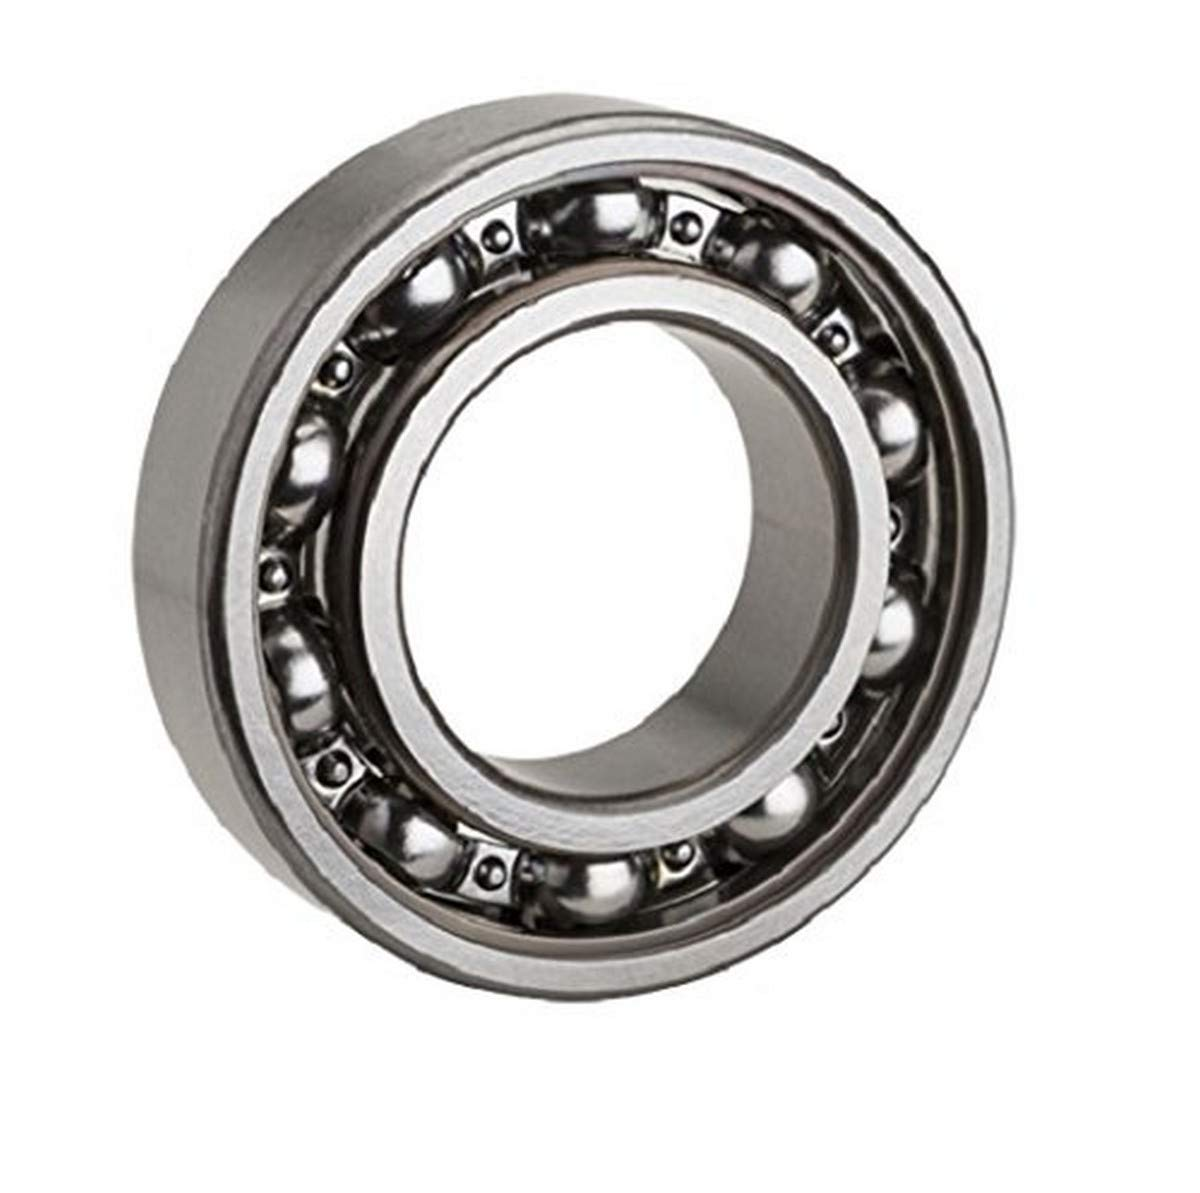 6306 Bearing Deep Groove Open Ball Bearings 30mm Steel Axle Low Friction No Drag